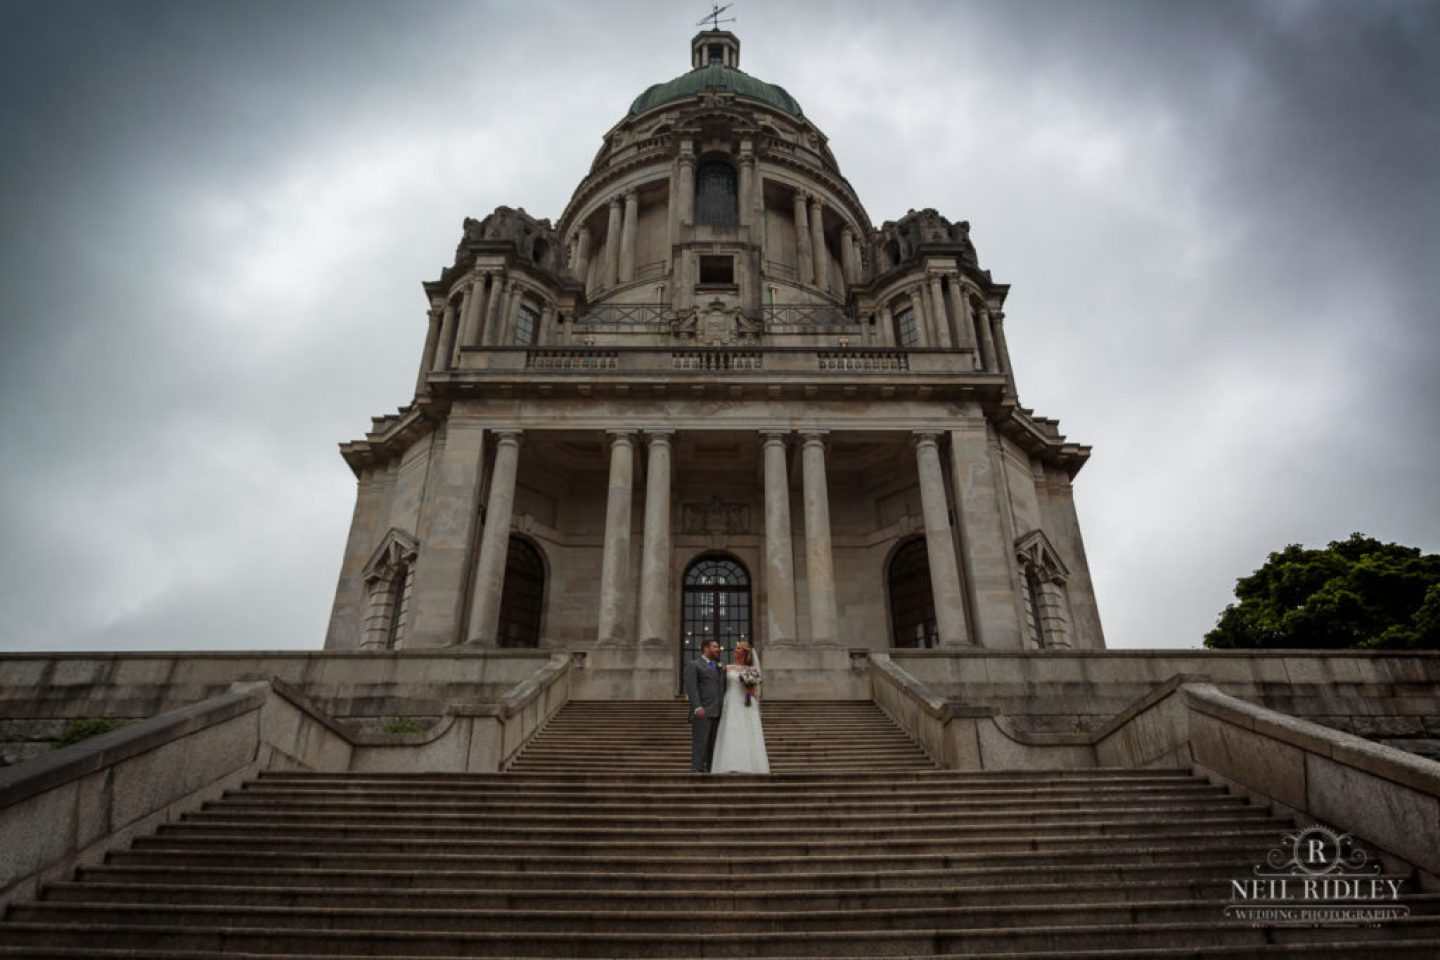 Lancaster Wedding Photographer - Bride and Groom pose on the steps at Ashton Memorial Lancaster